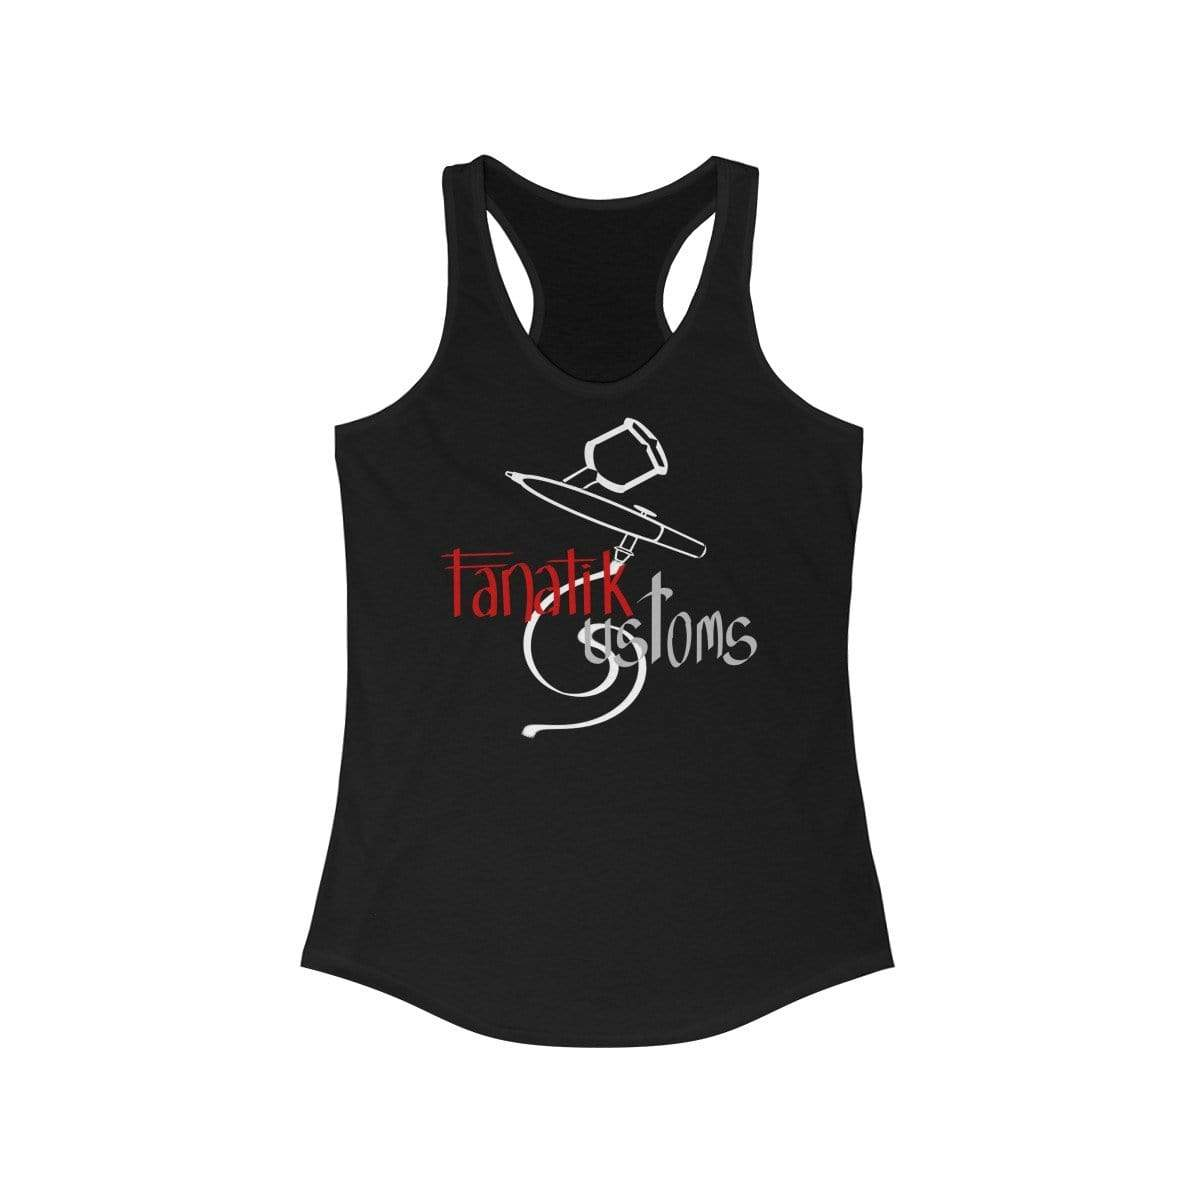 Printify Tank Top Solid Black / L Will's Fanatik Customs - Women's Racerback Tank Top